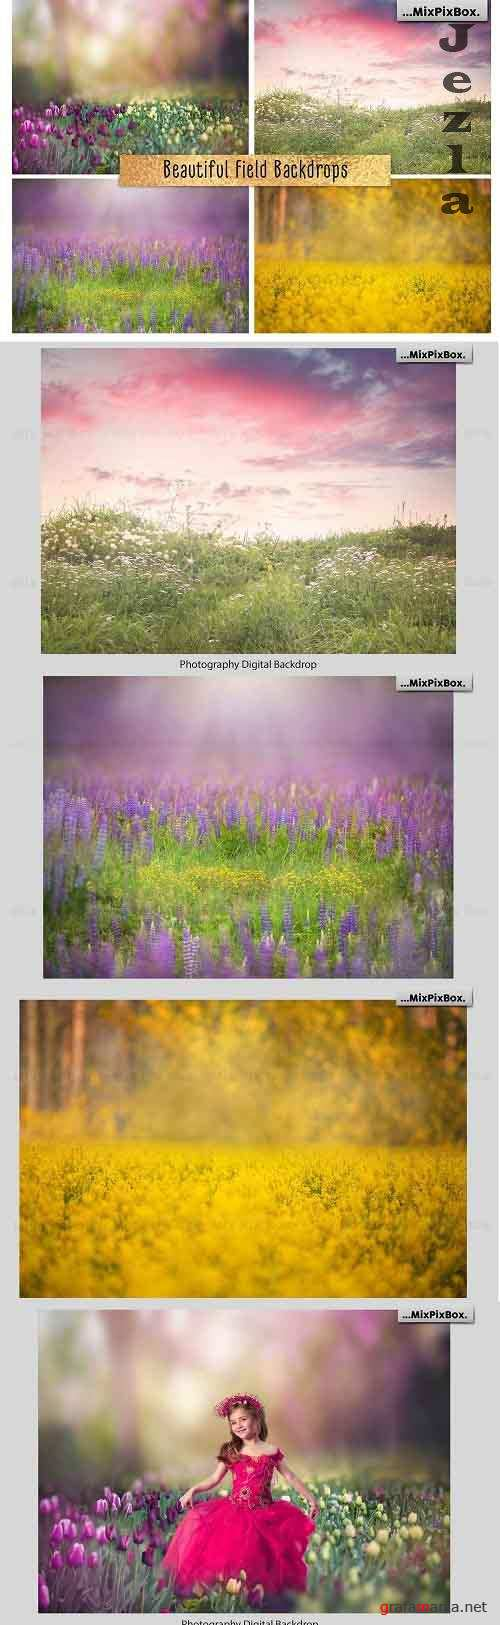 Beautiful Field Backdrops - 4970510